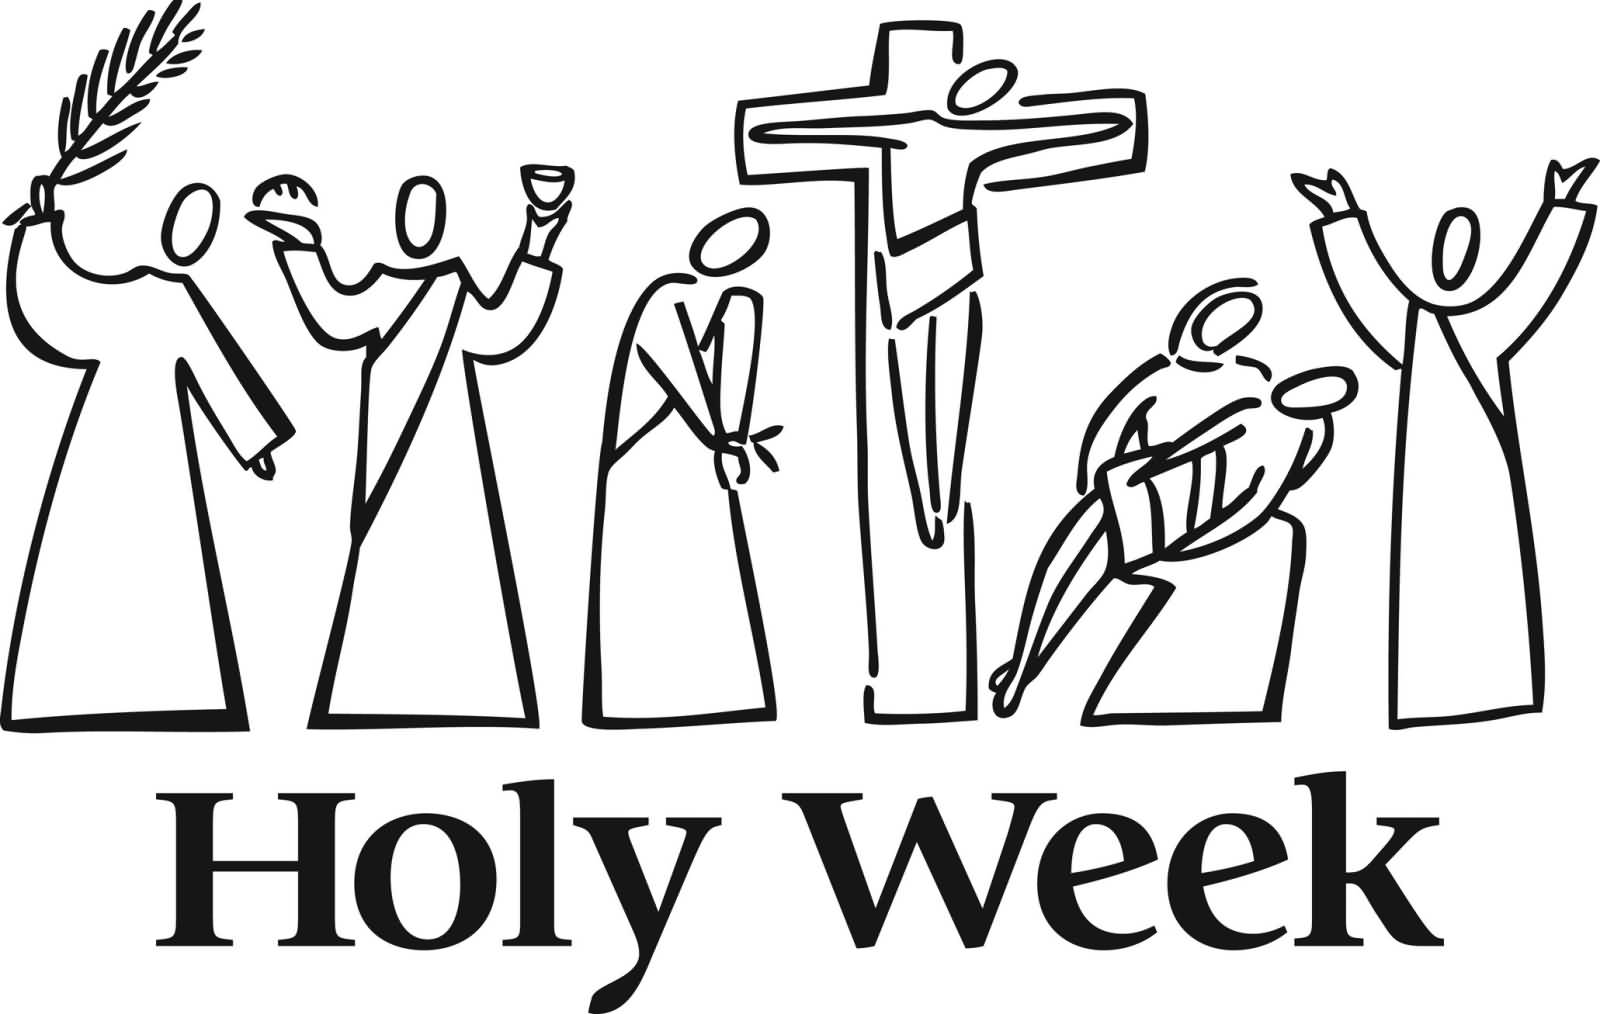 Catholic clipart holy week.  beautiful wish pictures